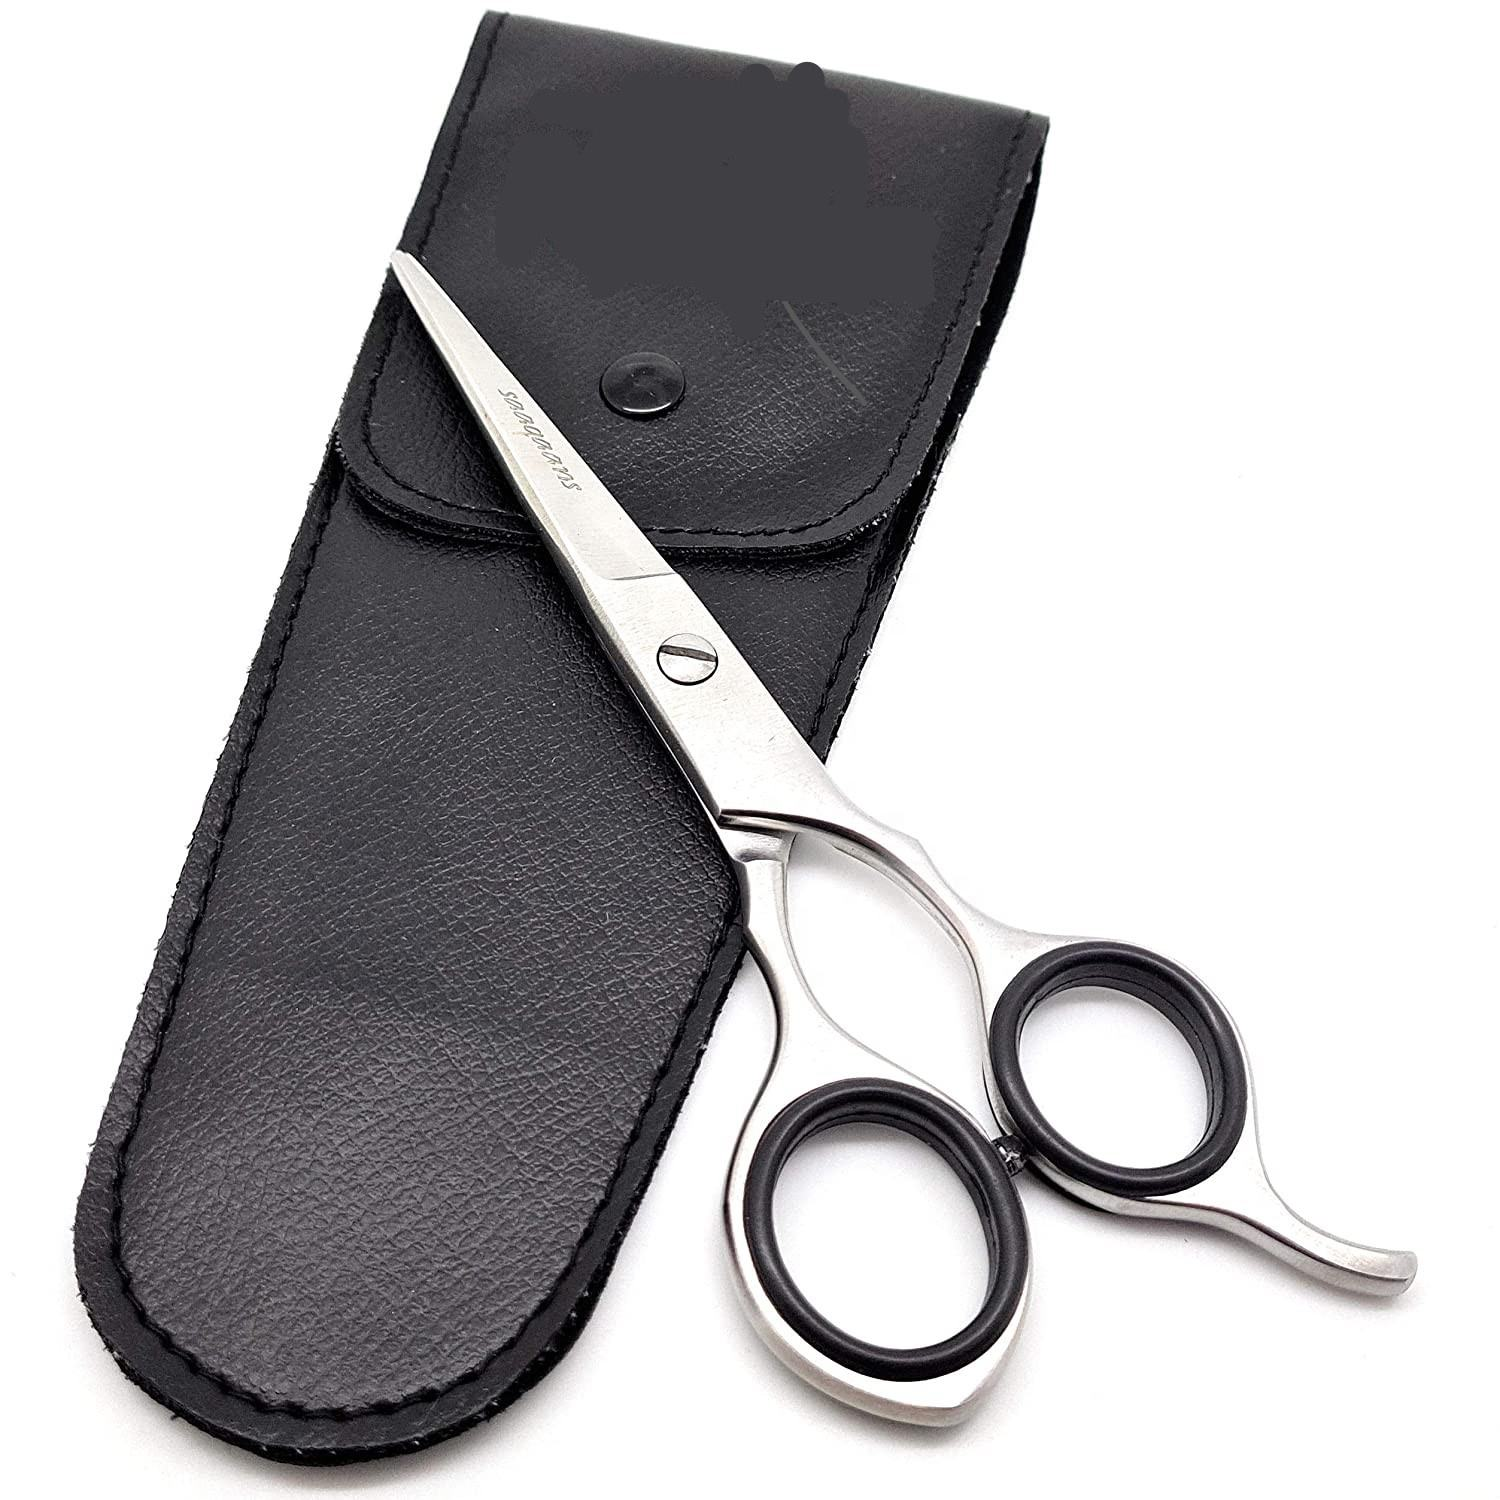 6 inch Professional barber hair beauty scissors